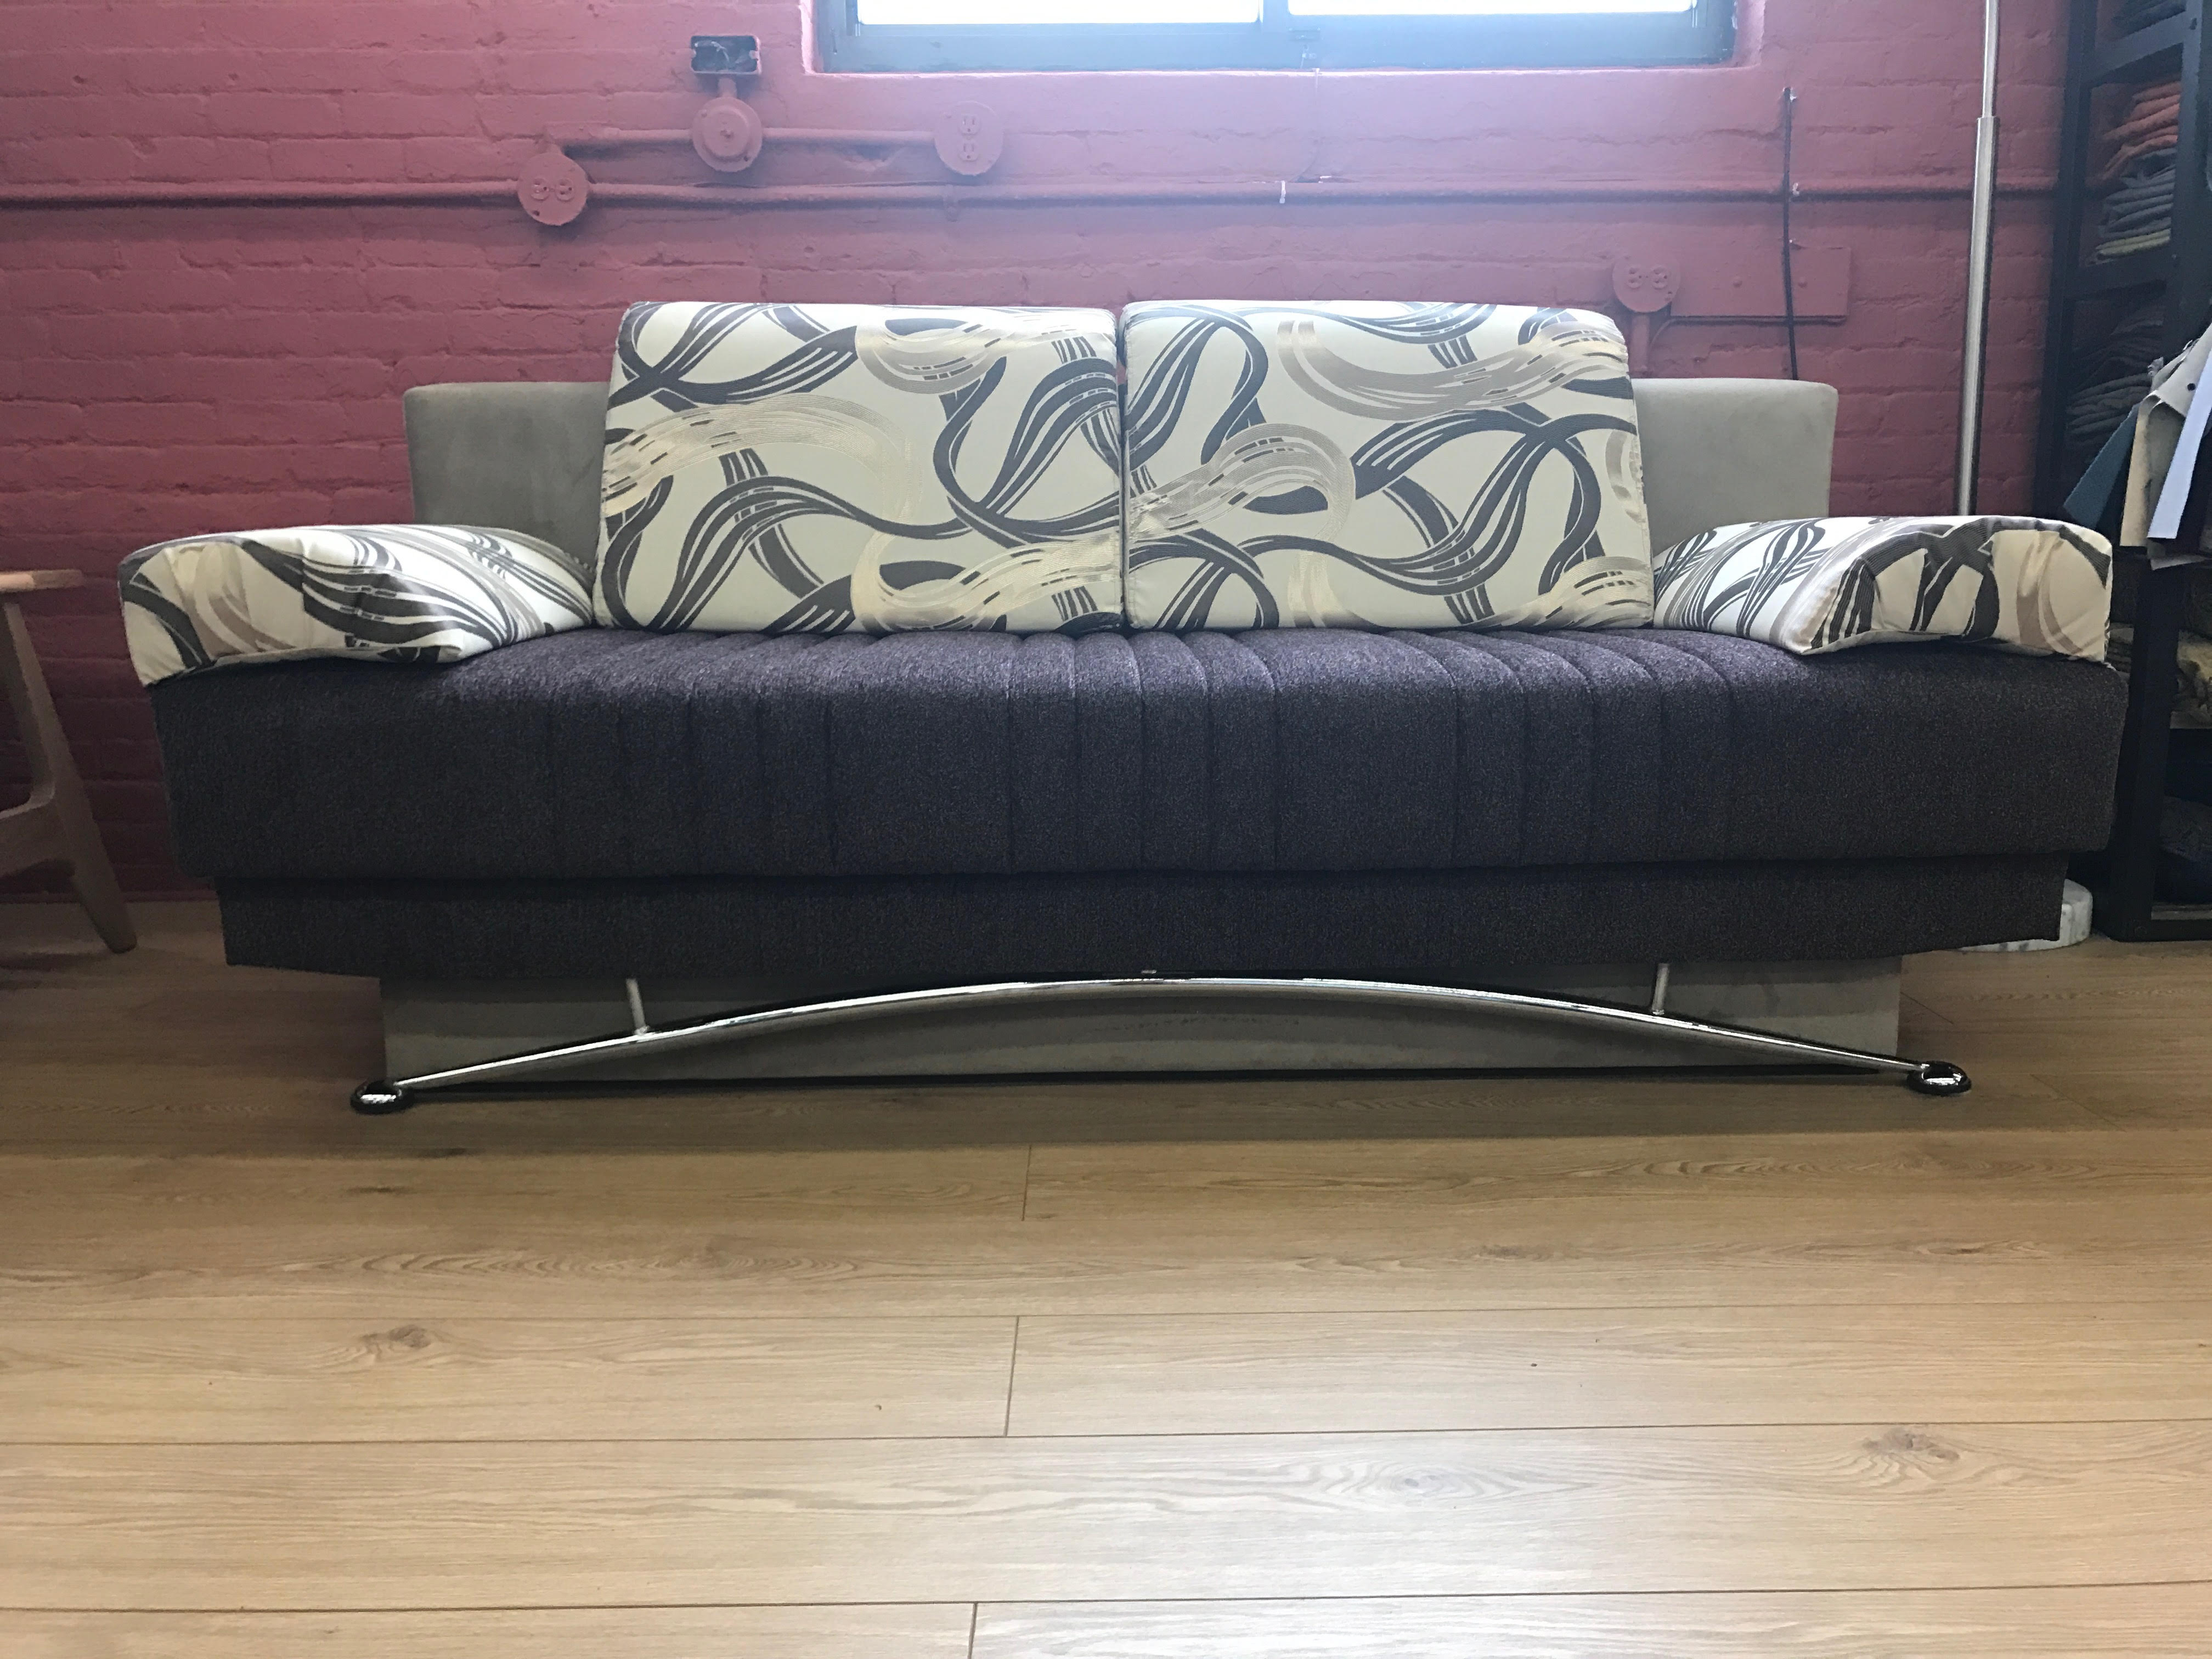 Floor Sample Fantasy Convertible Sofa Bed by Sunset